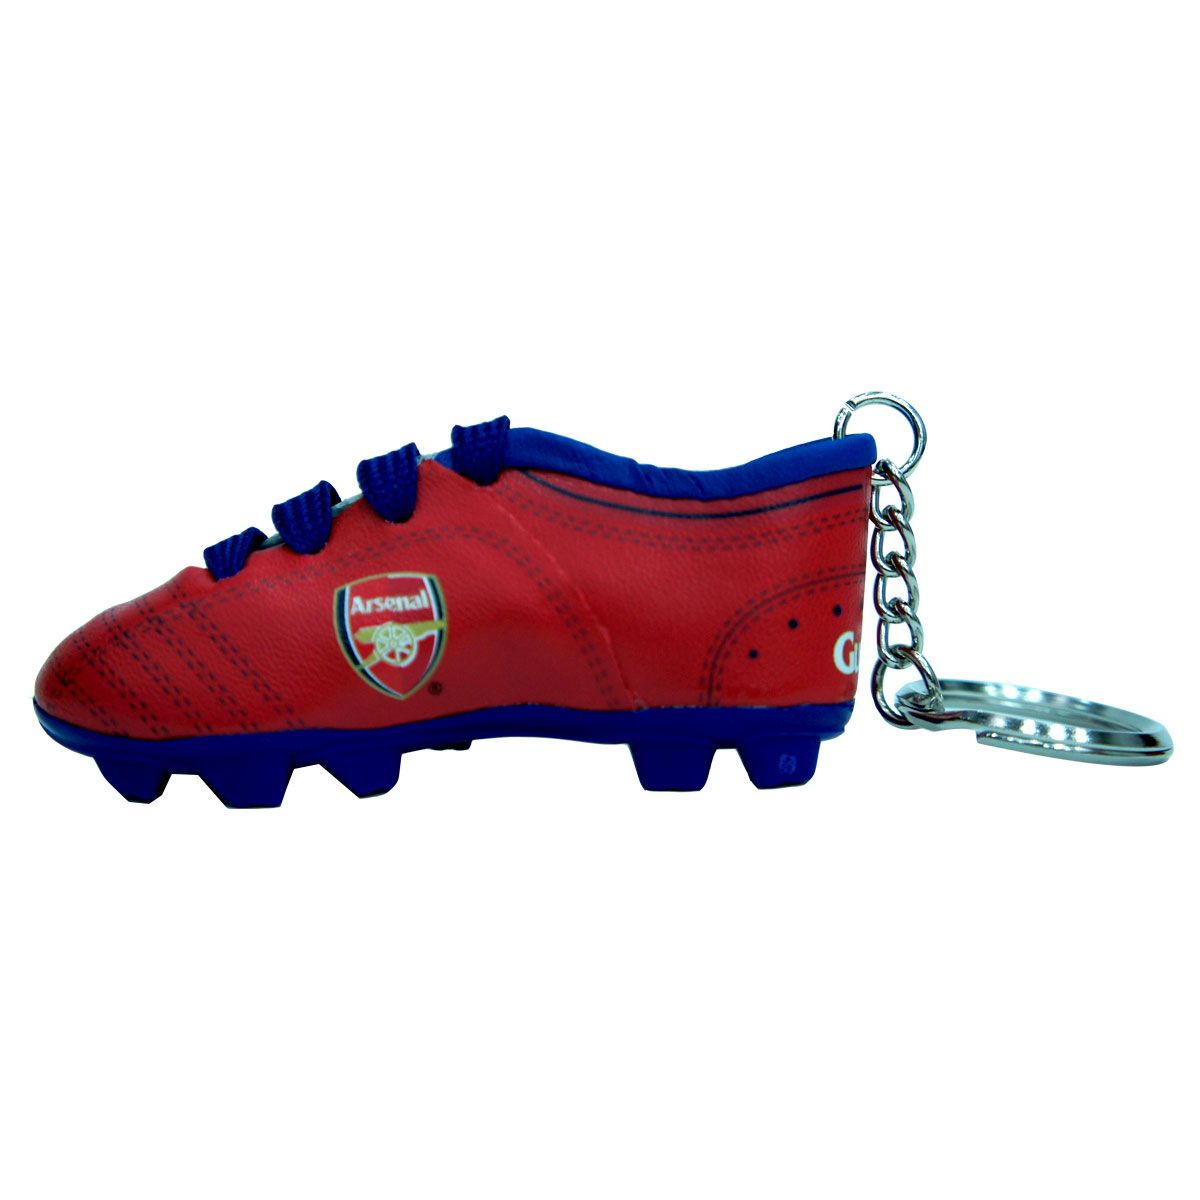 Arsenal F.C. Mini Football Boot Keychain - Rs. 499 Official#Football #Merchandisefrom#EPL